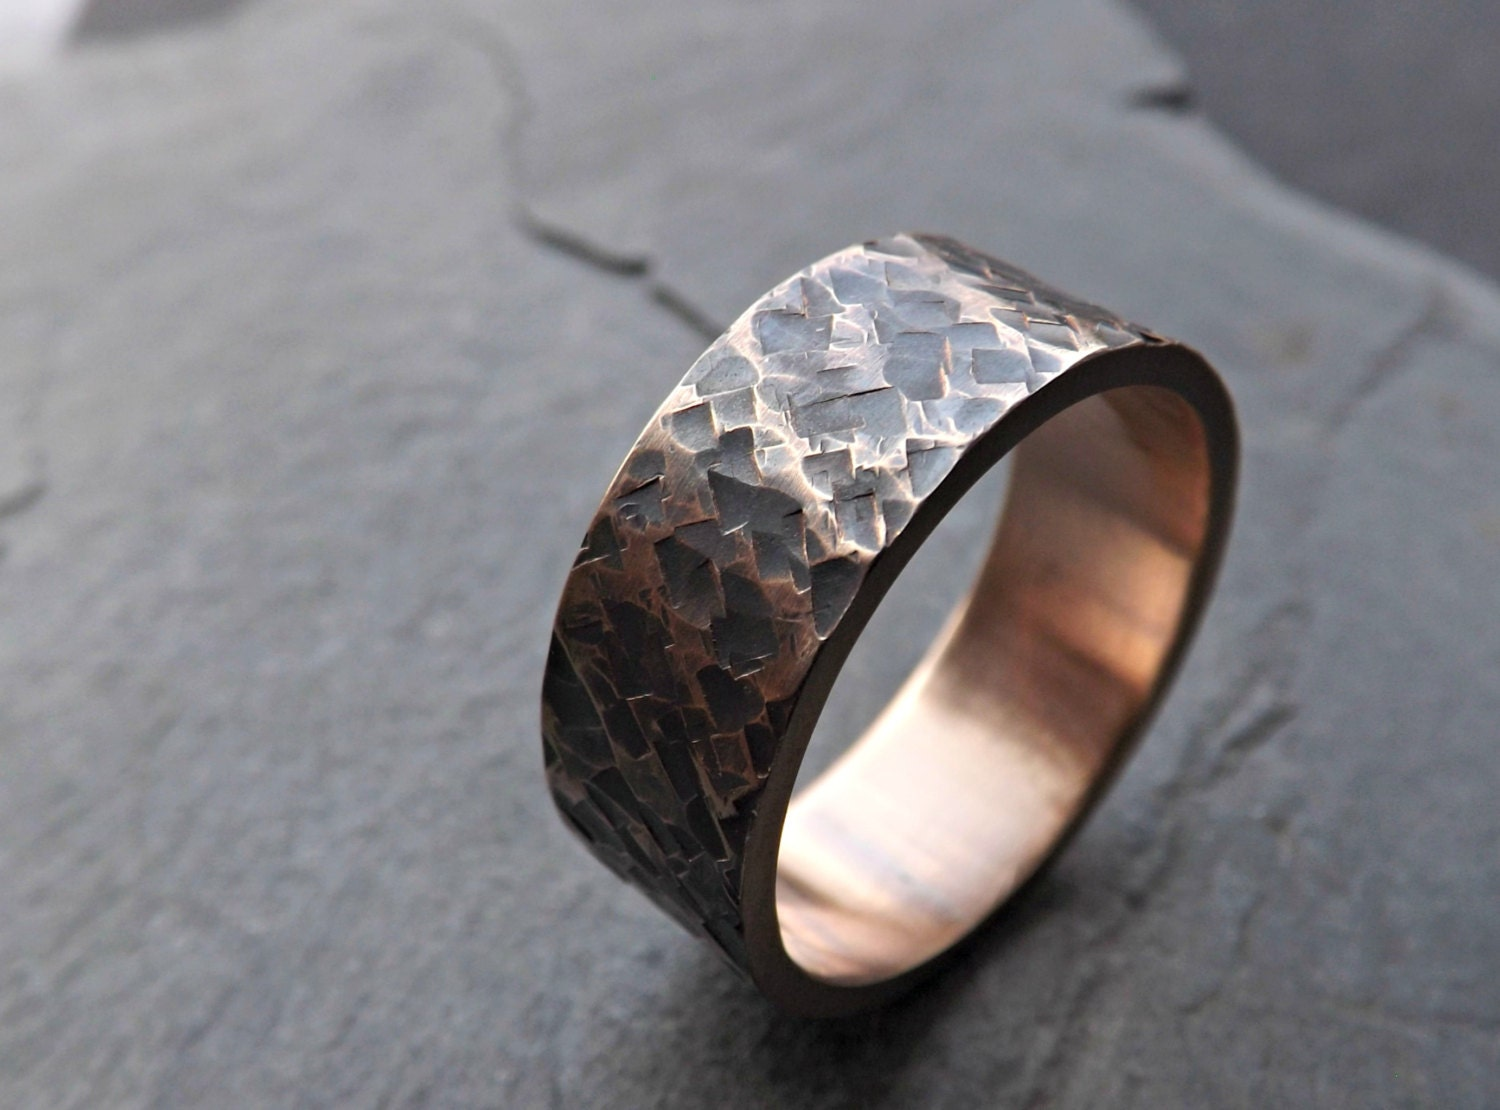 Rustic Bronze Ring Rustic Mens Ring Bronze Square Hammered. Stainless Steel Chains. 10 Karat Gold Bangle Bracelets. Uncut Diamond Engagement Rings. Yellow Wedding Rings. Moroccan Pendant. Wedding Invitation Brooch. Platinum Diamond Band. Oval Halo Engagement Rings